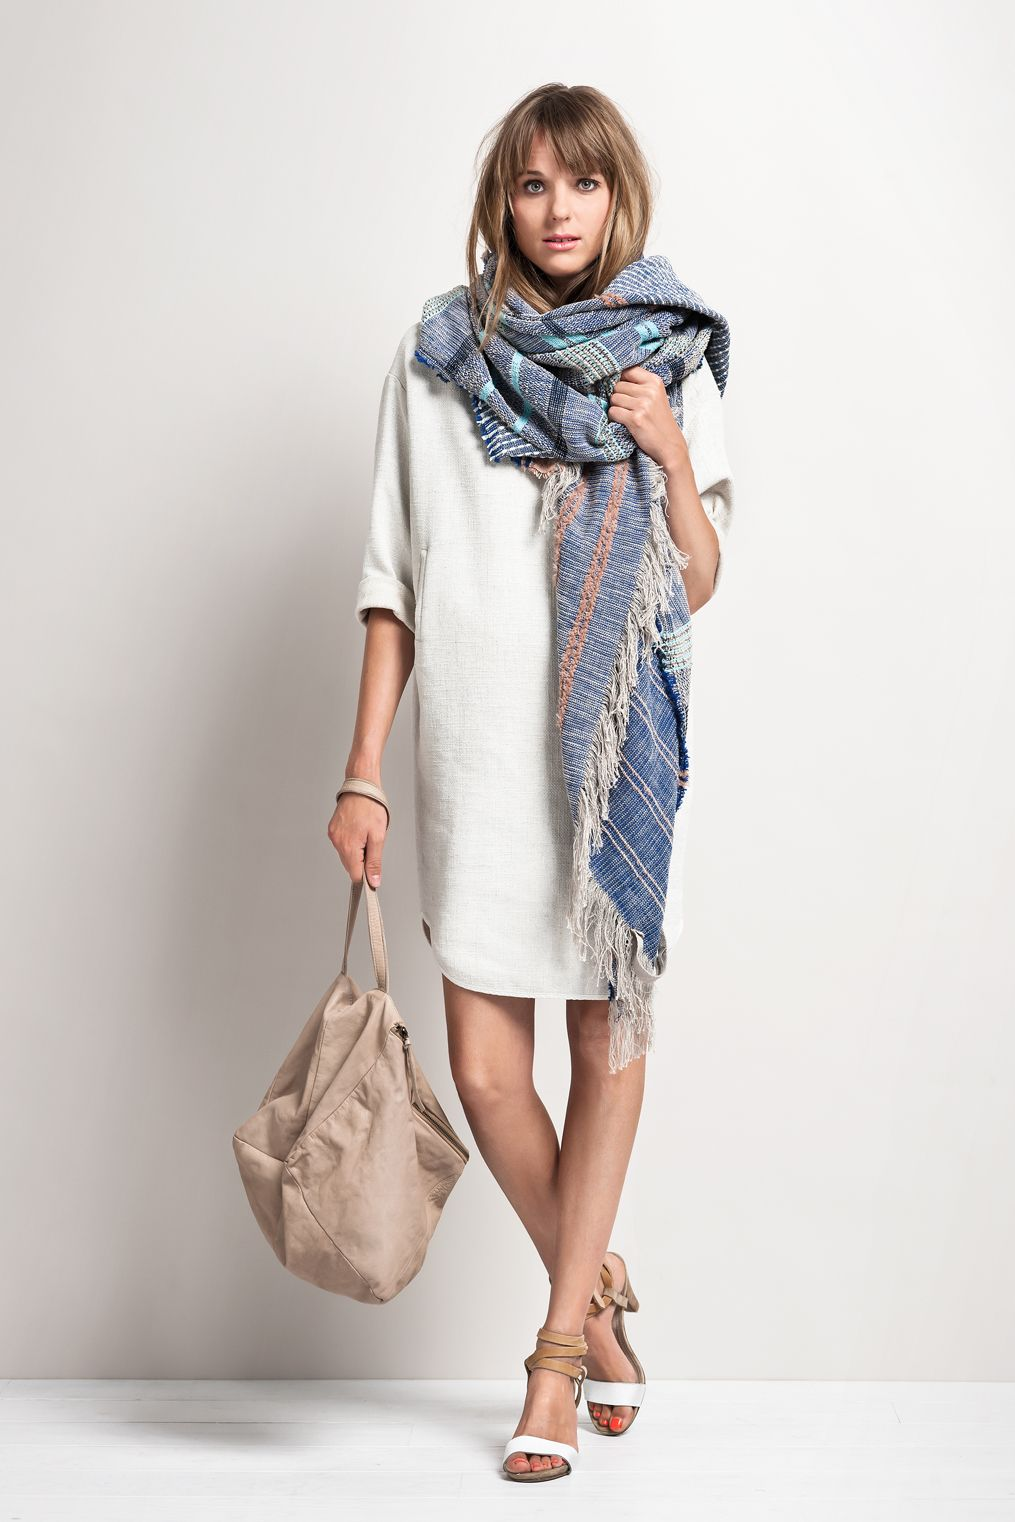 Oversized scarves for fall #trend   TRENDS I LOVE ...